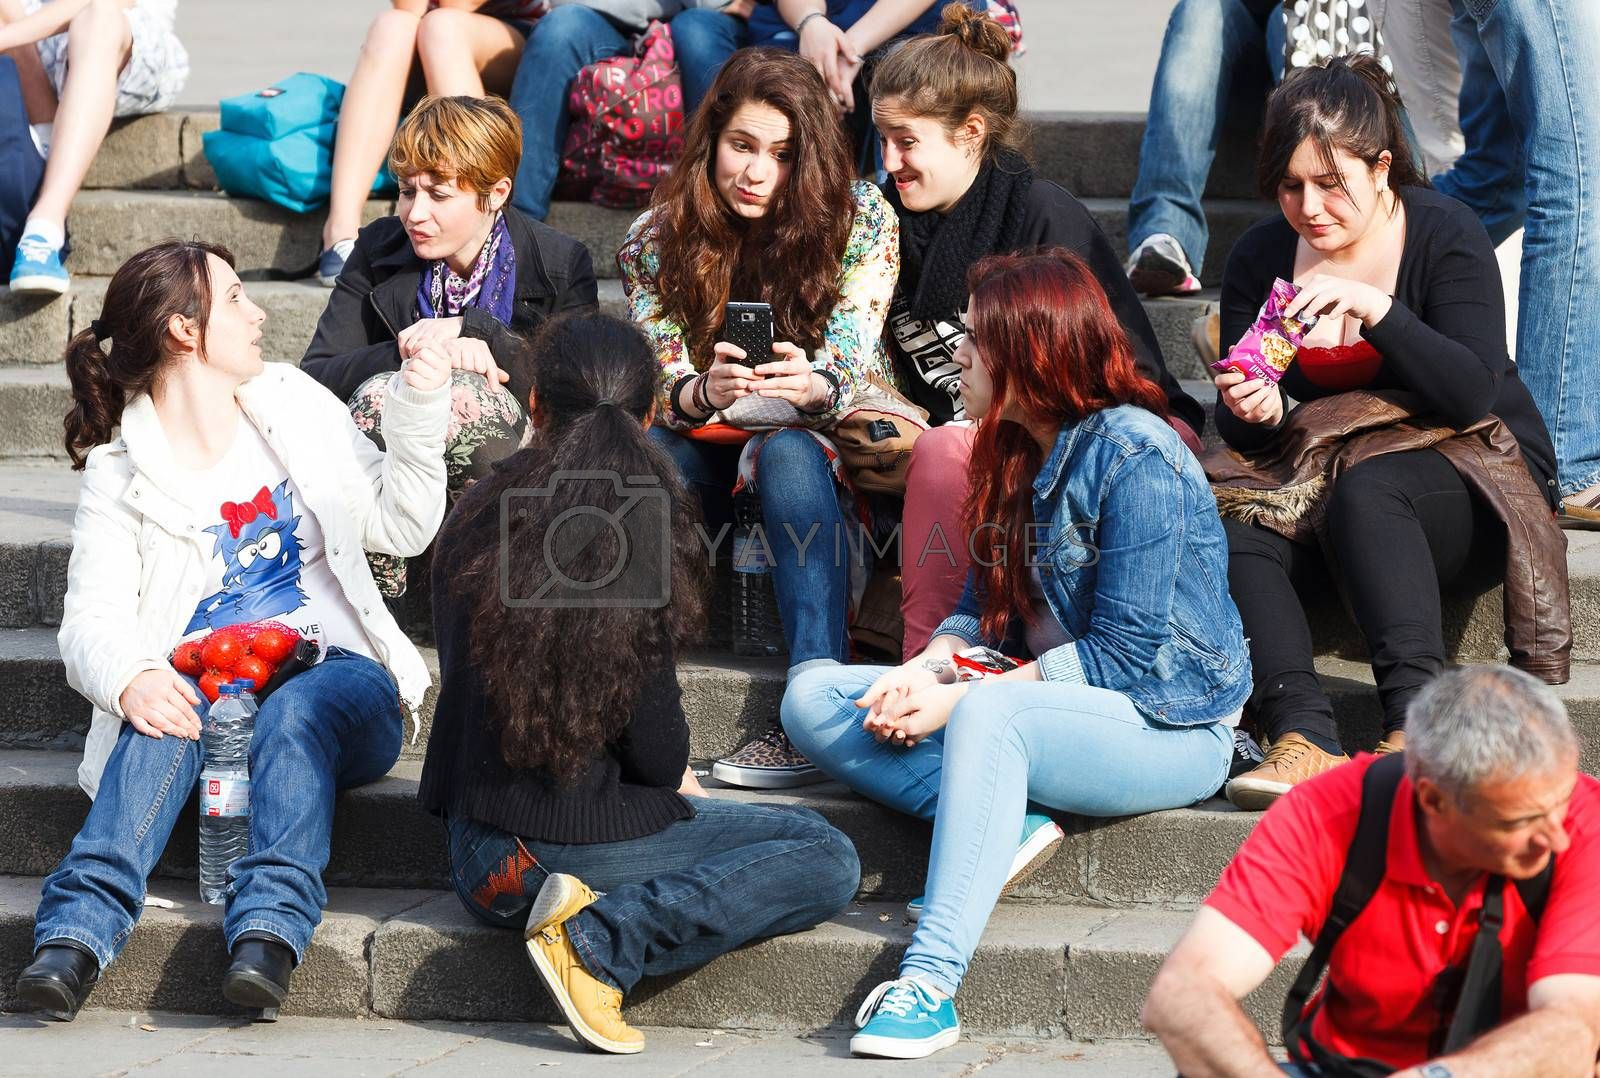 BARCELONA, SPAIN - APR 16: Company of young girls sitting on steps of Barcelona Cathedral. April 16, 2013 in Barcelona, Spain. This Cathedral, is the seat of the Archbishop of Barcelona